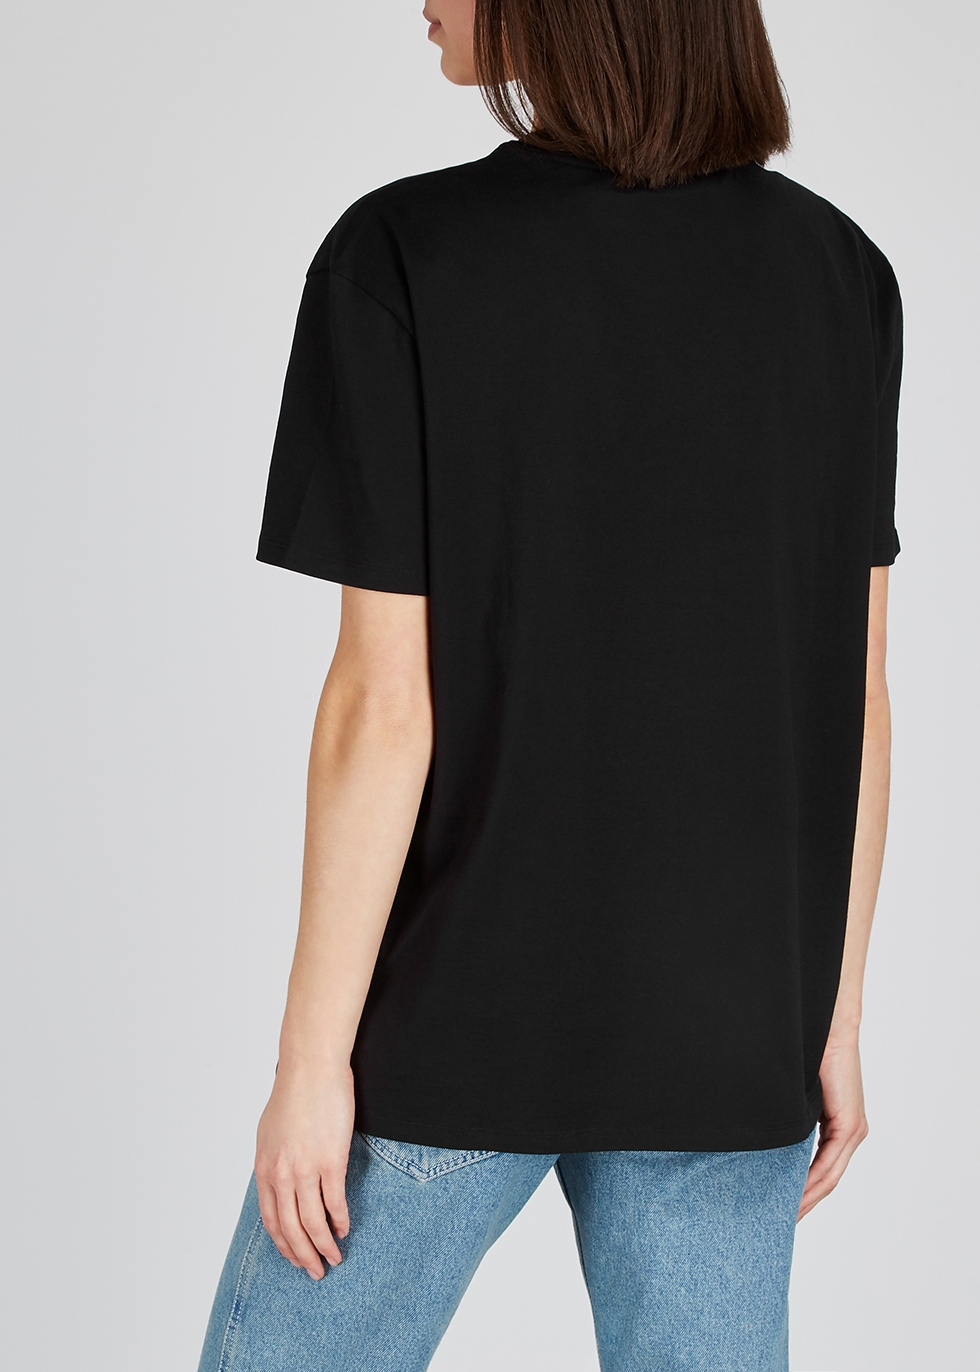 Glow-in-the-dark printed cotton T-shirt - Givenchy